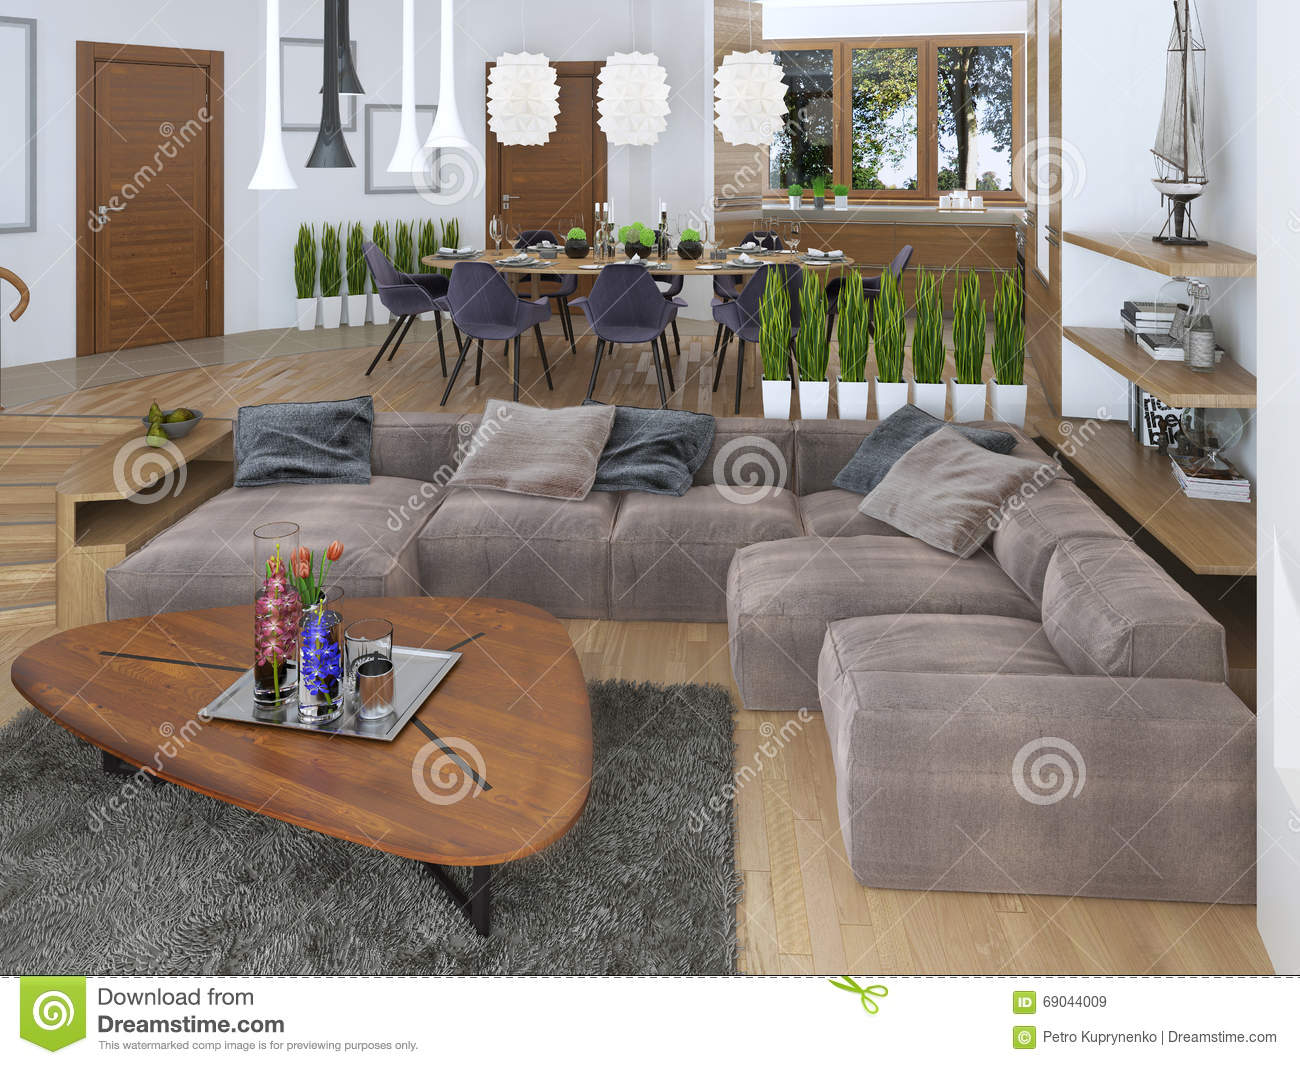 Charmant Modern Living Room In A Loft Style, Blending Smoothly Into The Kitchen  Dining Room. Large Corner Sofa, Shelves With Decorations, Soft Chair With A  Floor ...